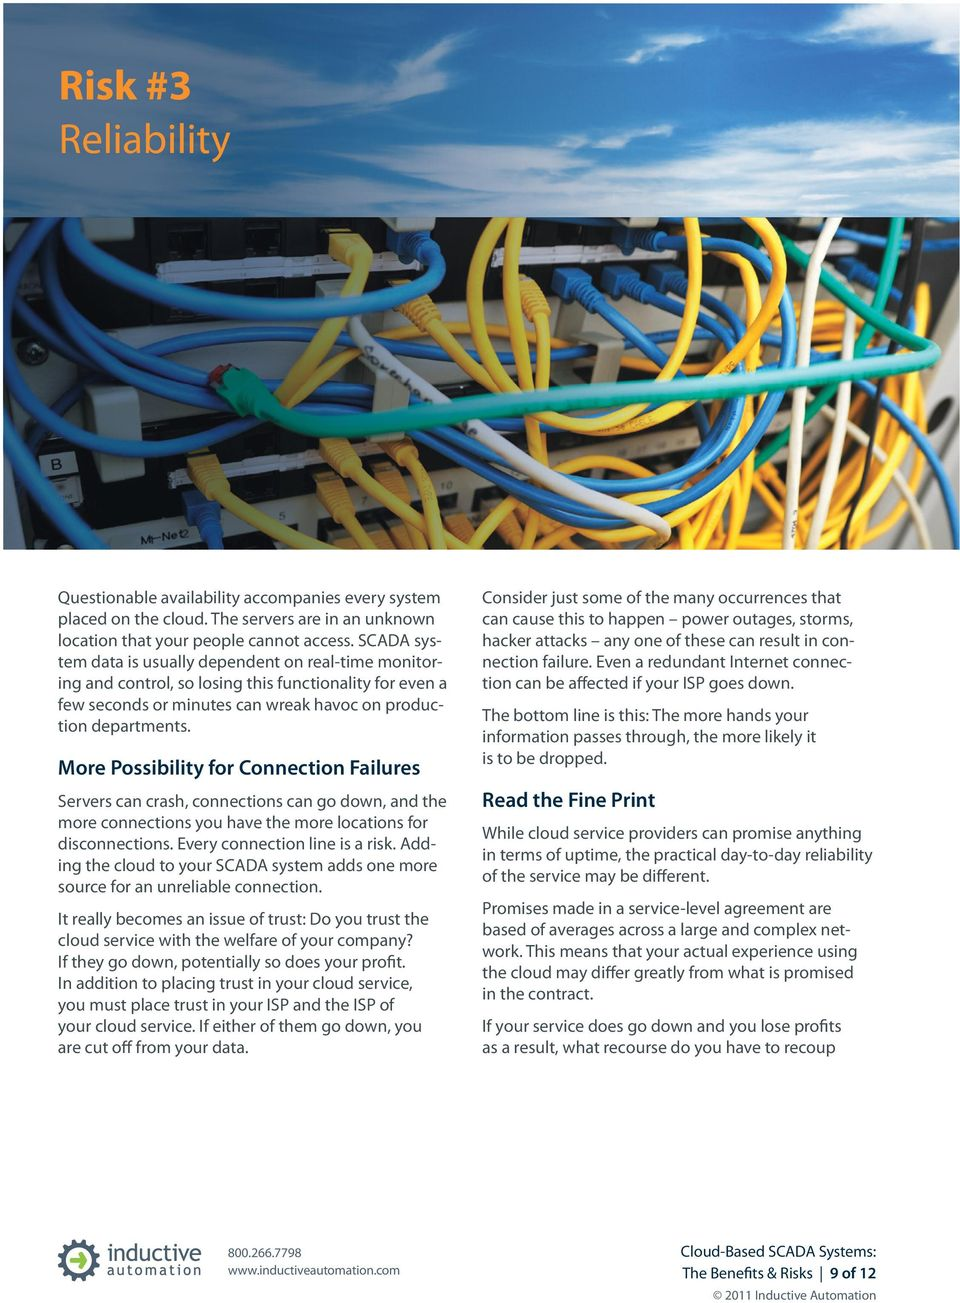 More Possibility for Connection Failures Servers can crash, connections can go down, and the more connections you have the more locations for disconnections. Every connection line is a risk.